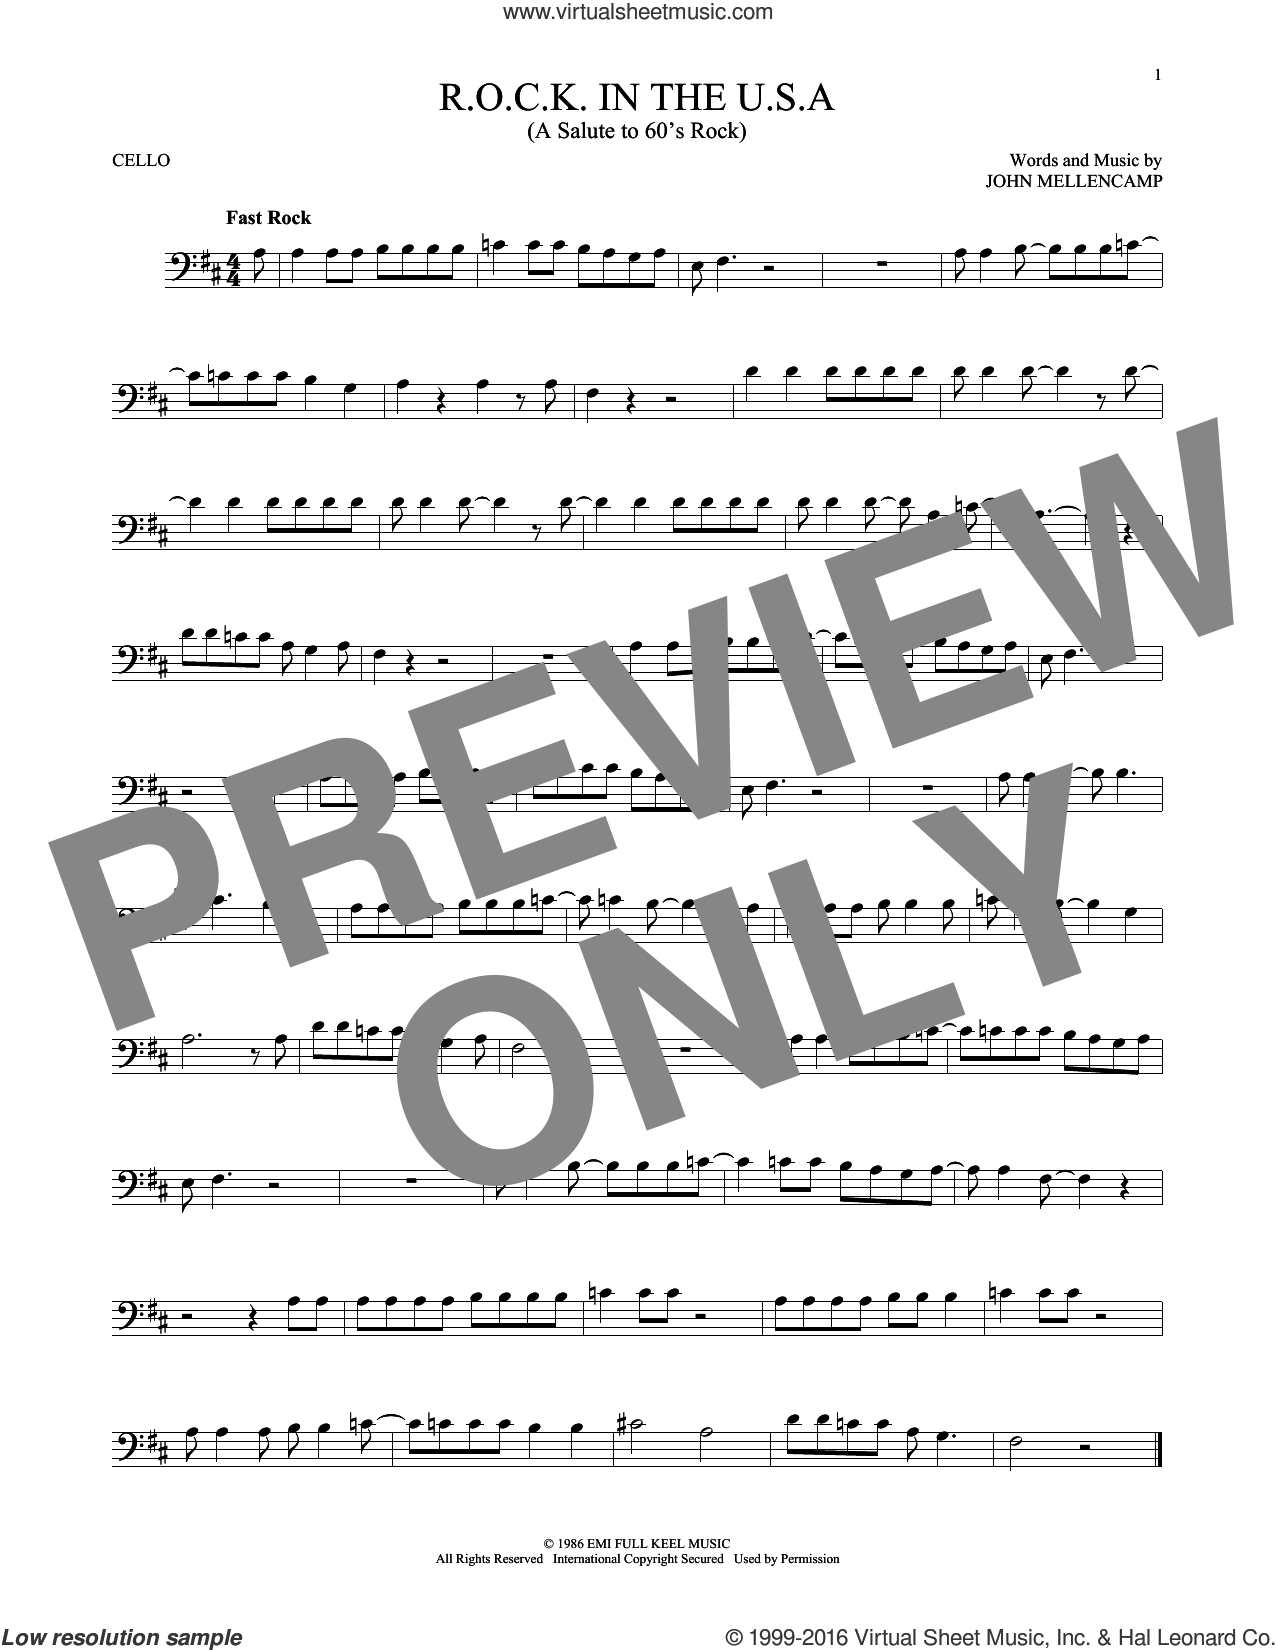 R.O.C.K. In The U.S.A. (A Salute To 60's Rock) sheet music for cello solo by John Mellencamp, intermediate skill level